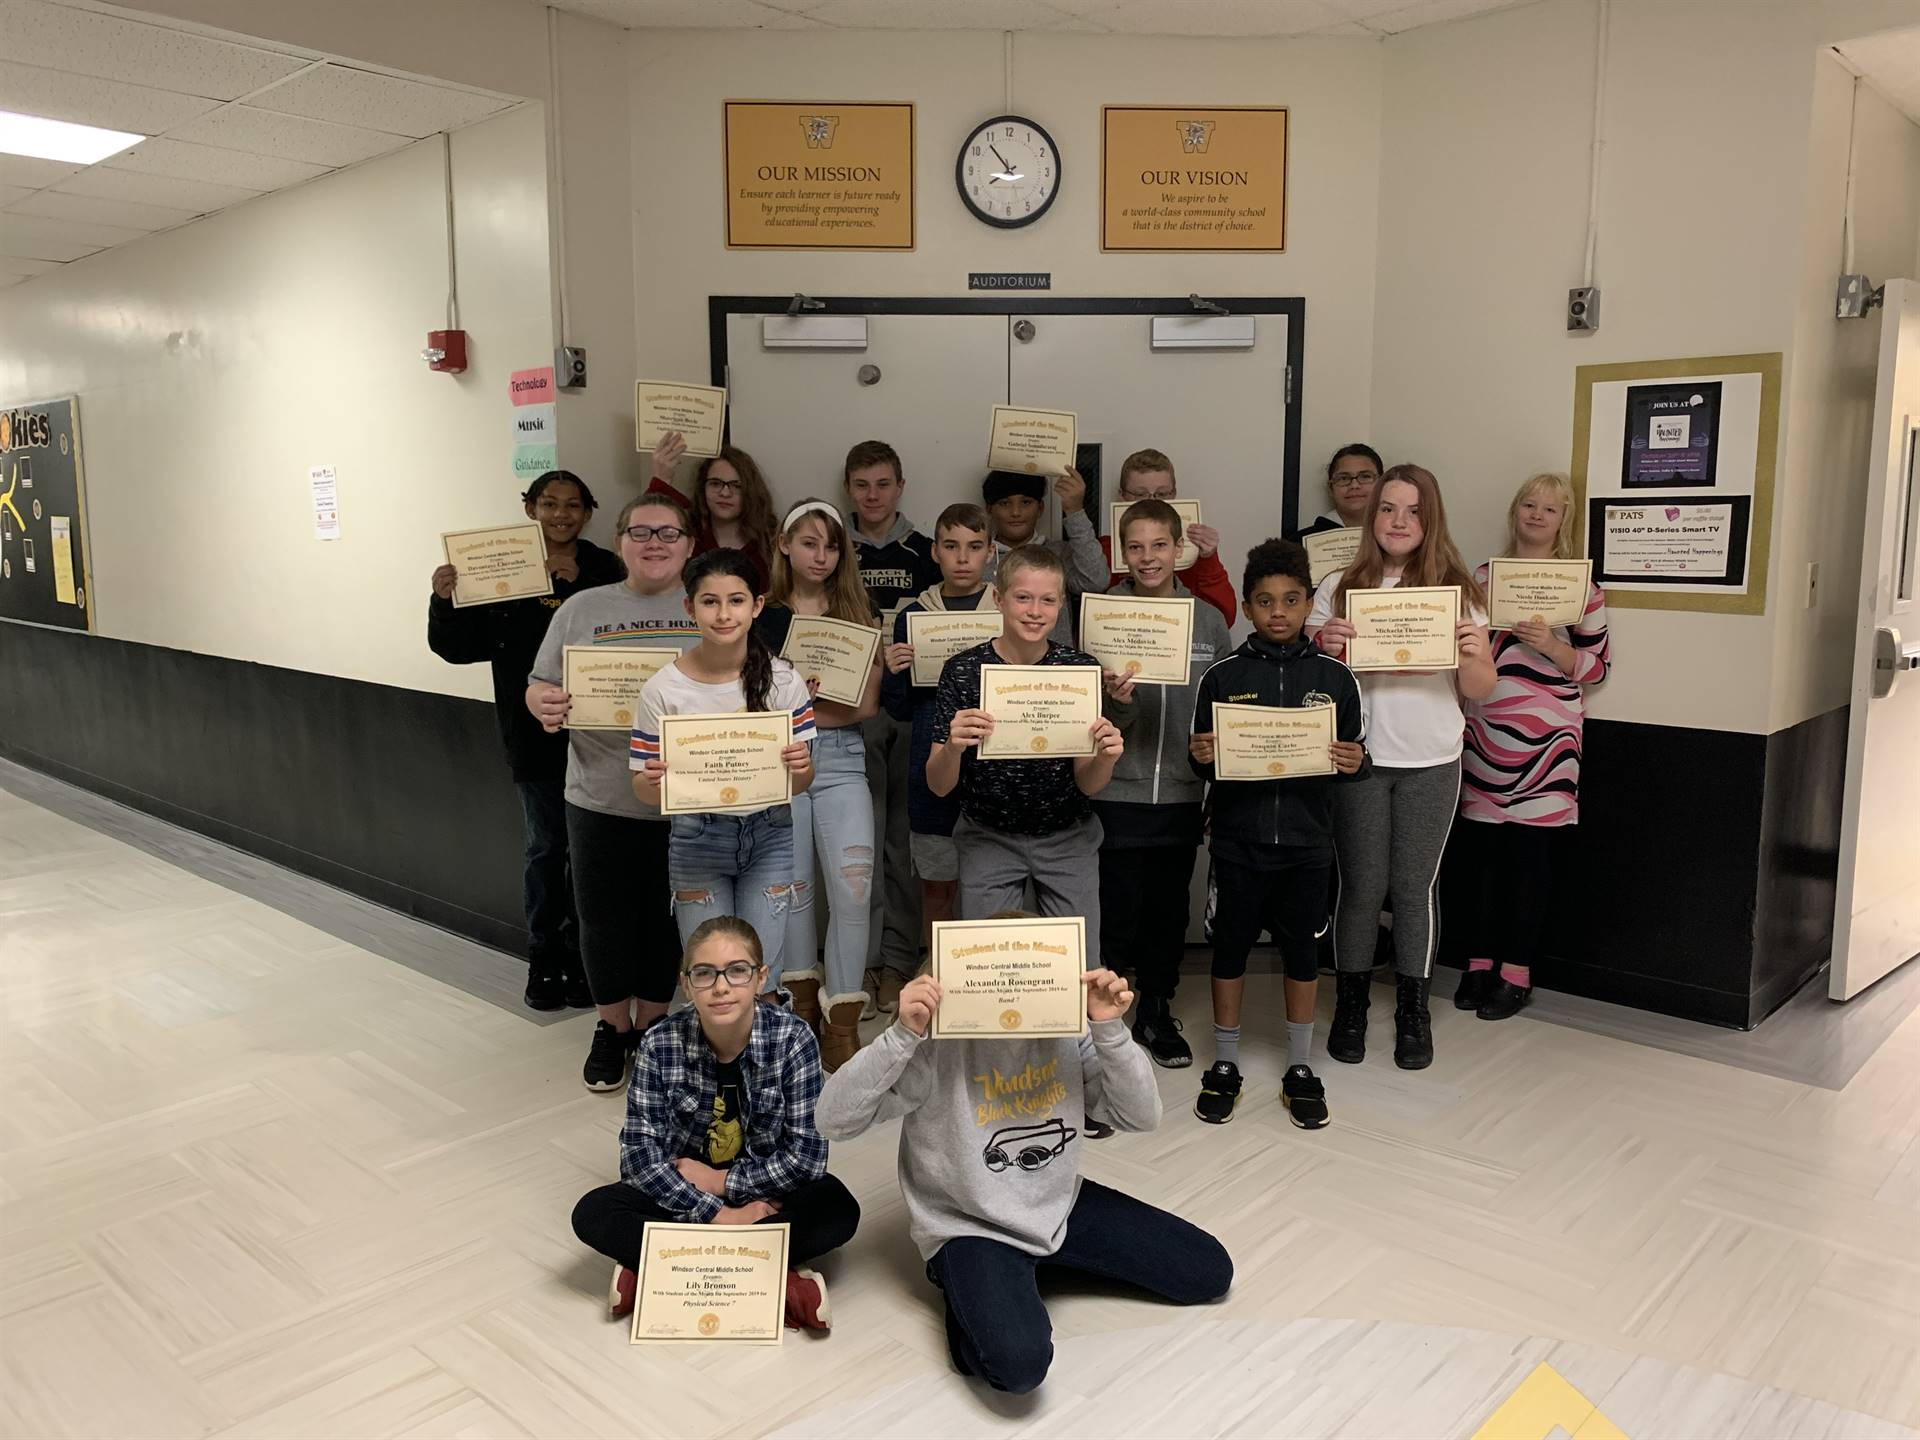 17 7th graders holding certificates in a hallway